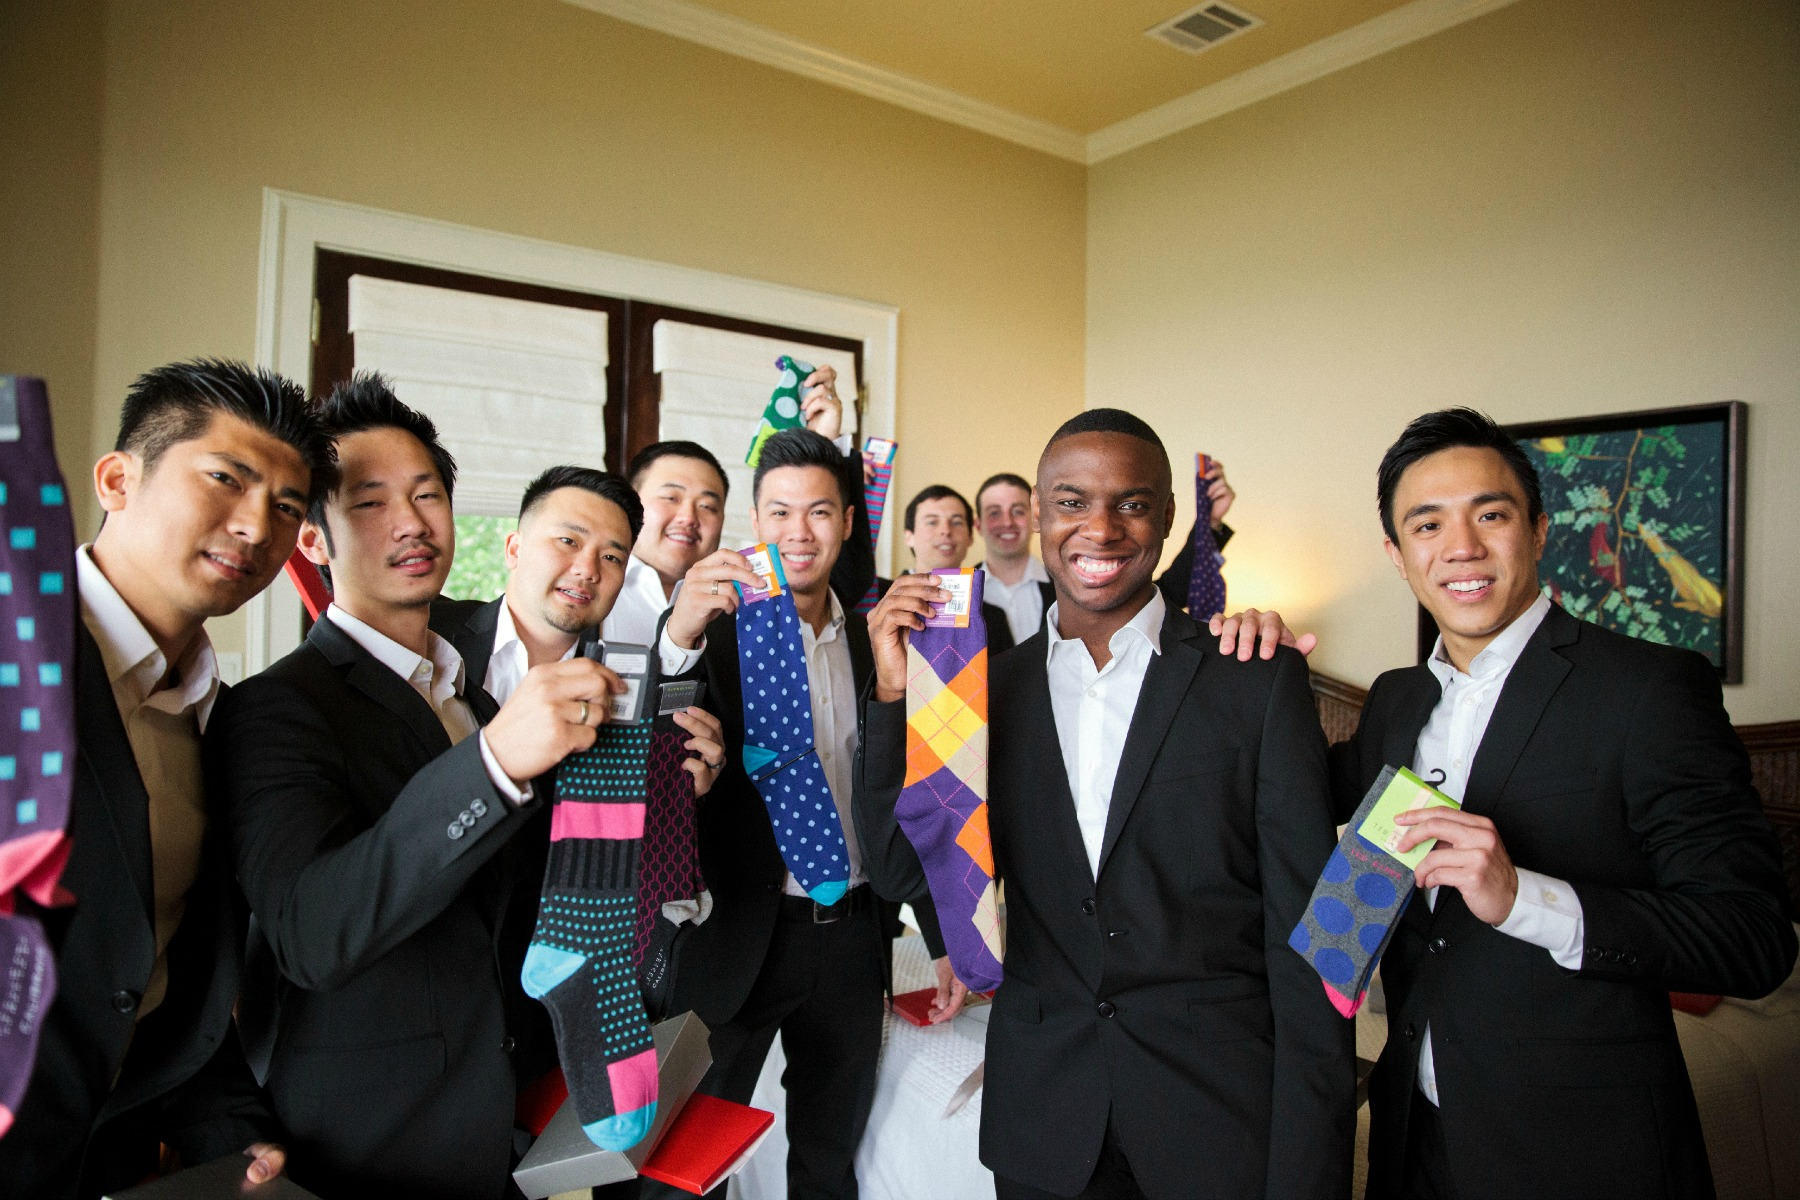 groomsmen showing off their printed socks